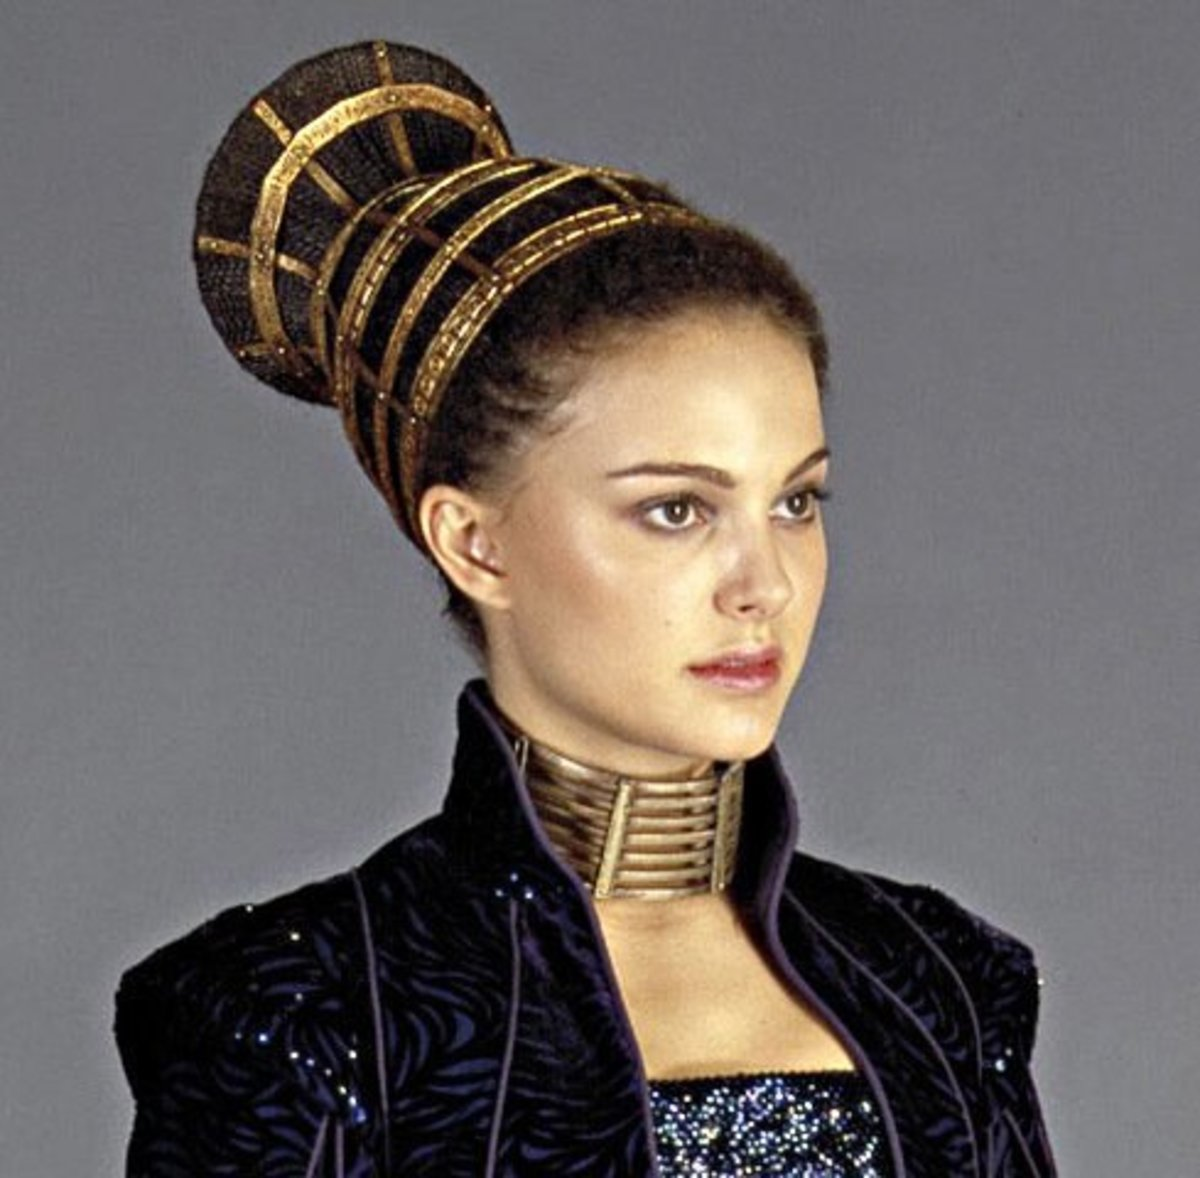 Natalie Portman as Padme Amidala from Star Wars Episode II Attack of the Clones